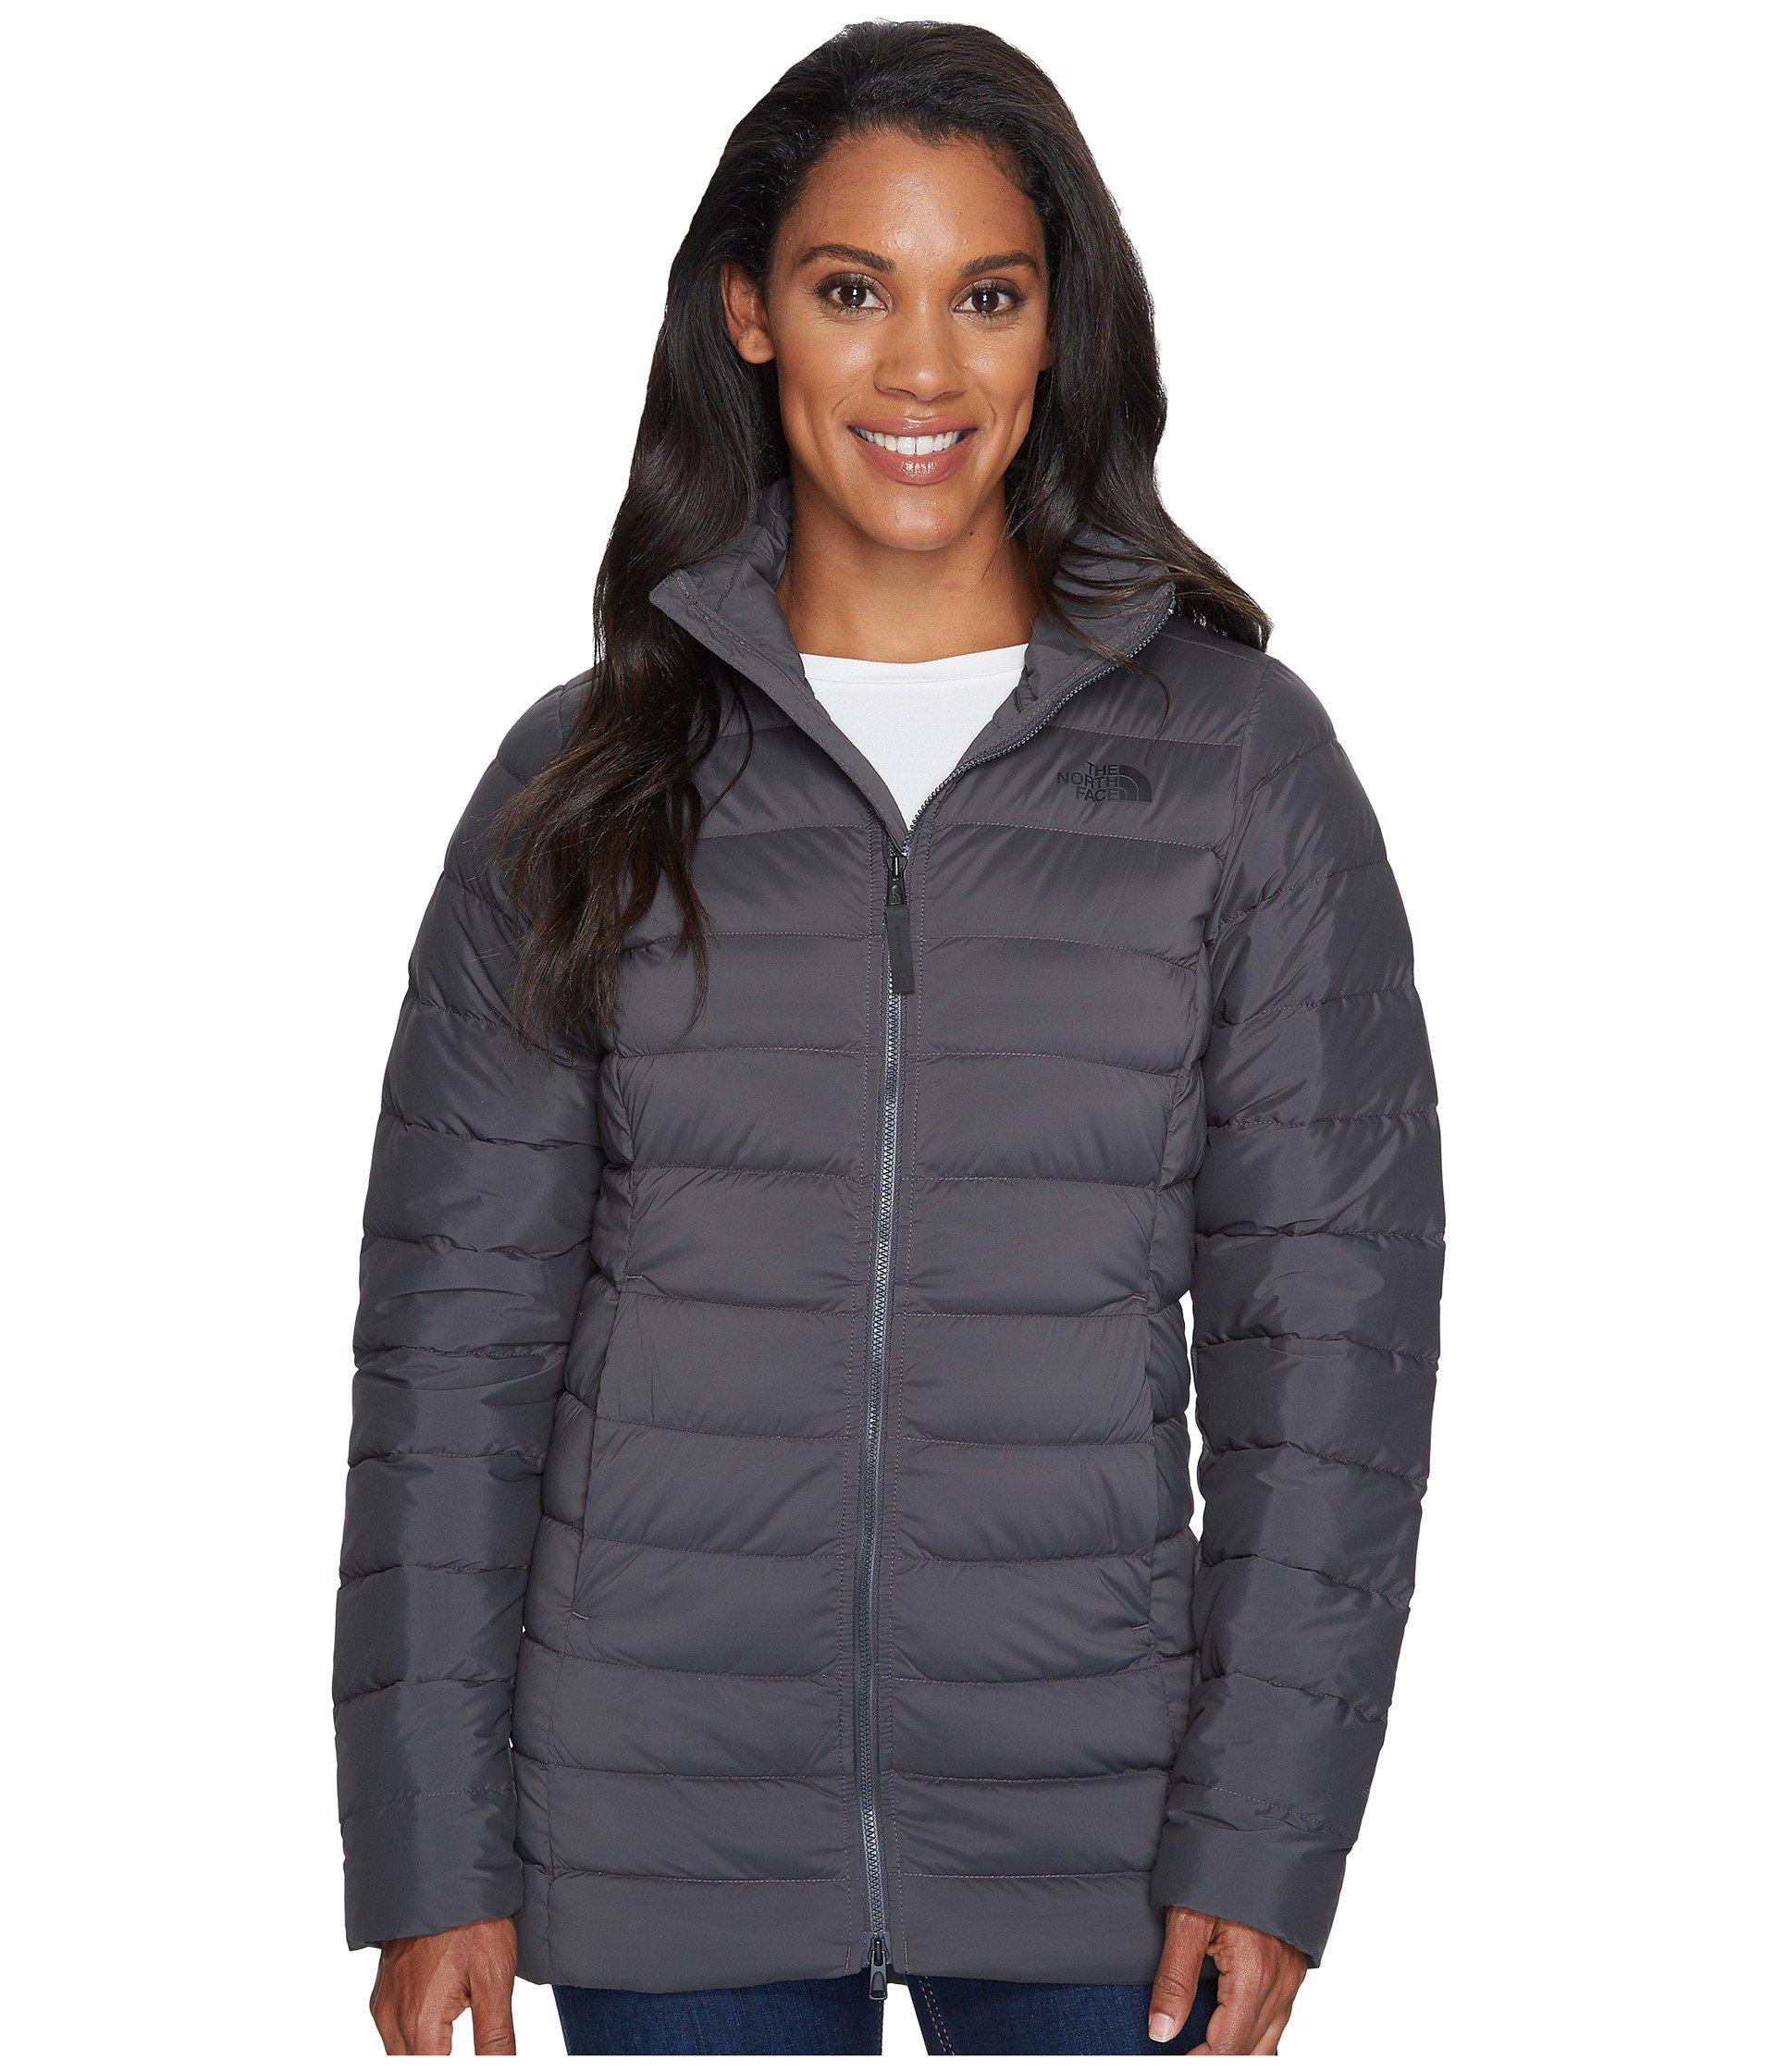 928a284a6831 Lyst - The North Face Stretch Down Parka in Gray - Save 26%